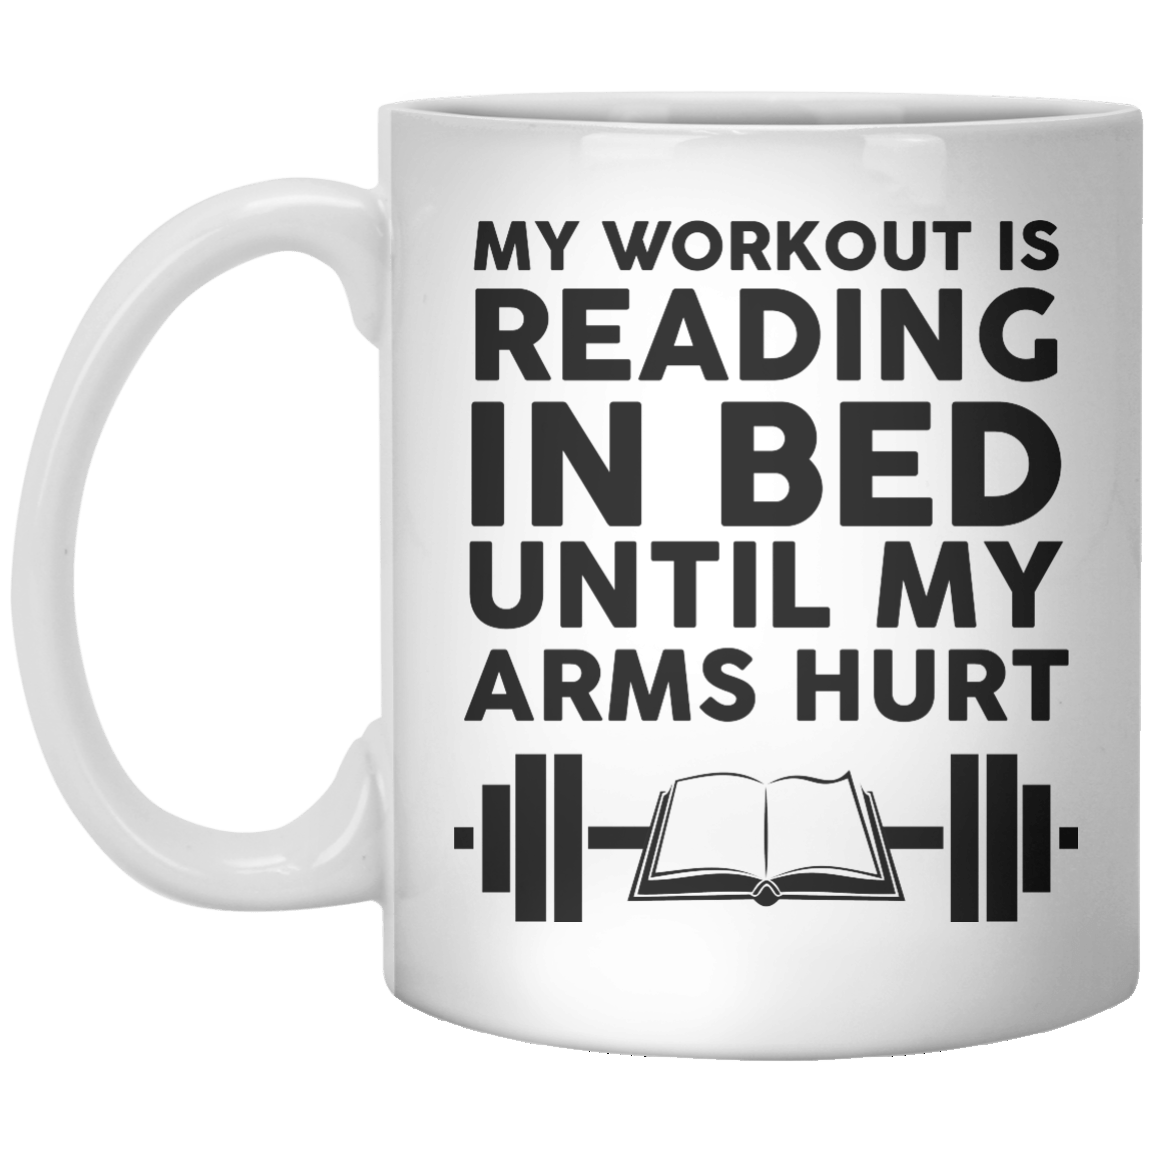 My Workout Is Reading In Bed Until My Arms Hurt - Shirtoopia